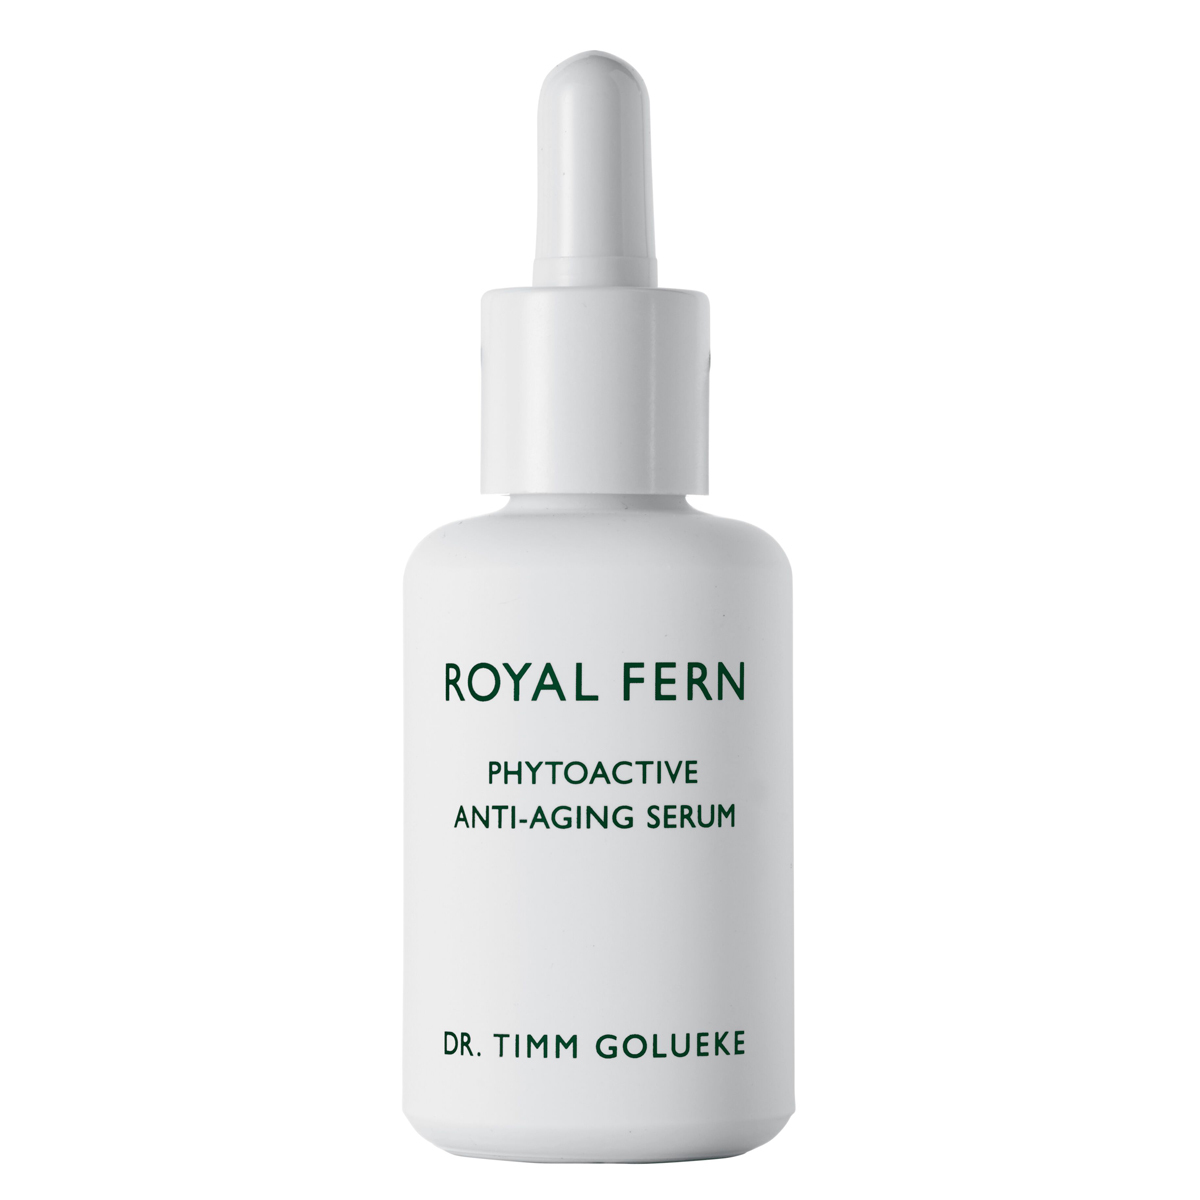 Phyto Anti-aging Serum de Royal Fern.